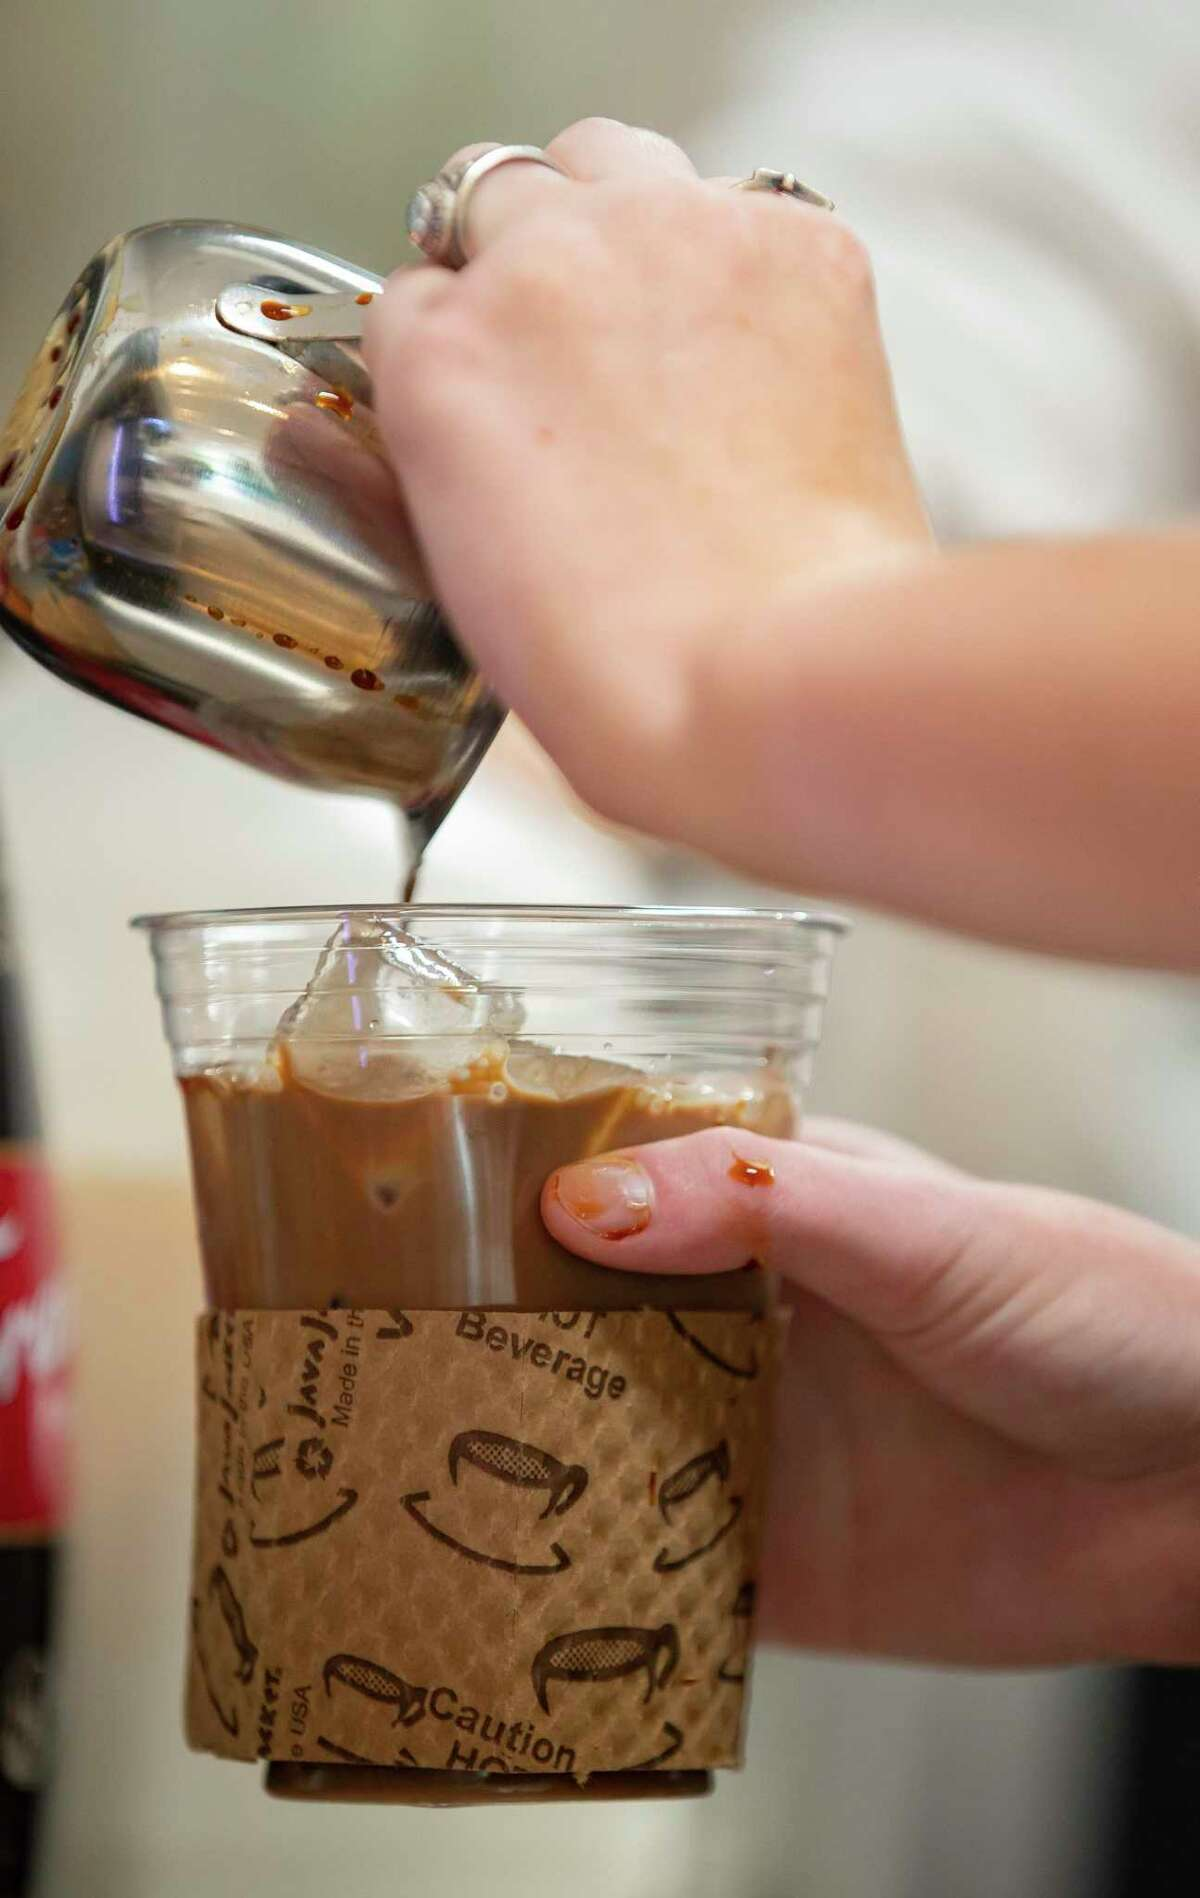 Employees make an iced coffee drink during a practice day, Thursday, Aug. 26, 2021, at Belong Kitchen in Houston. Belong Kitchen, a grab-and-go outfit that employs young adults with intellectual and developmental disabilities, is getting ready to open up.